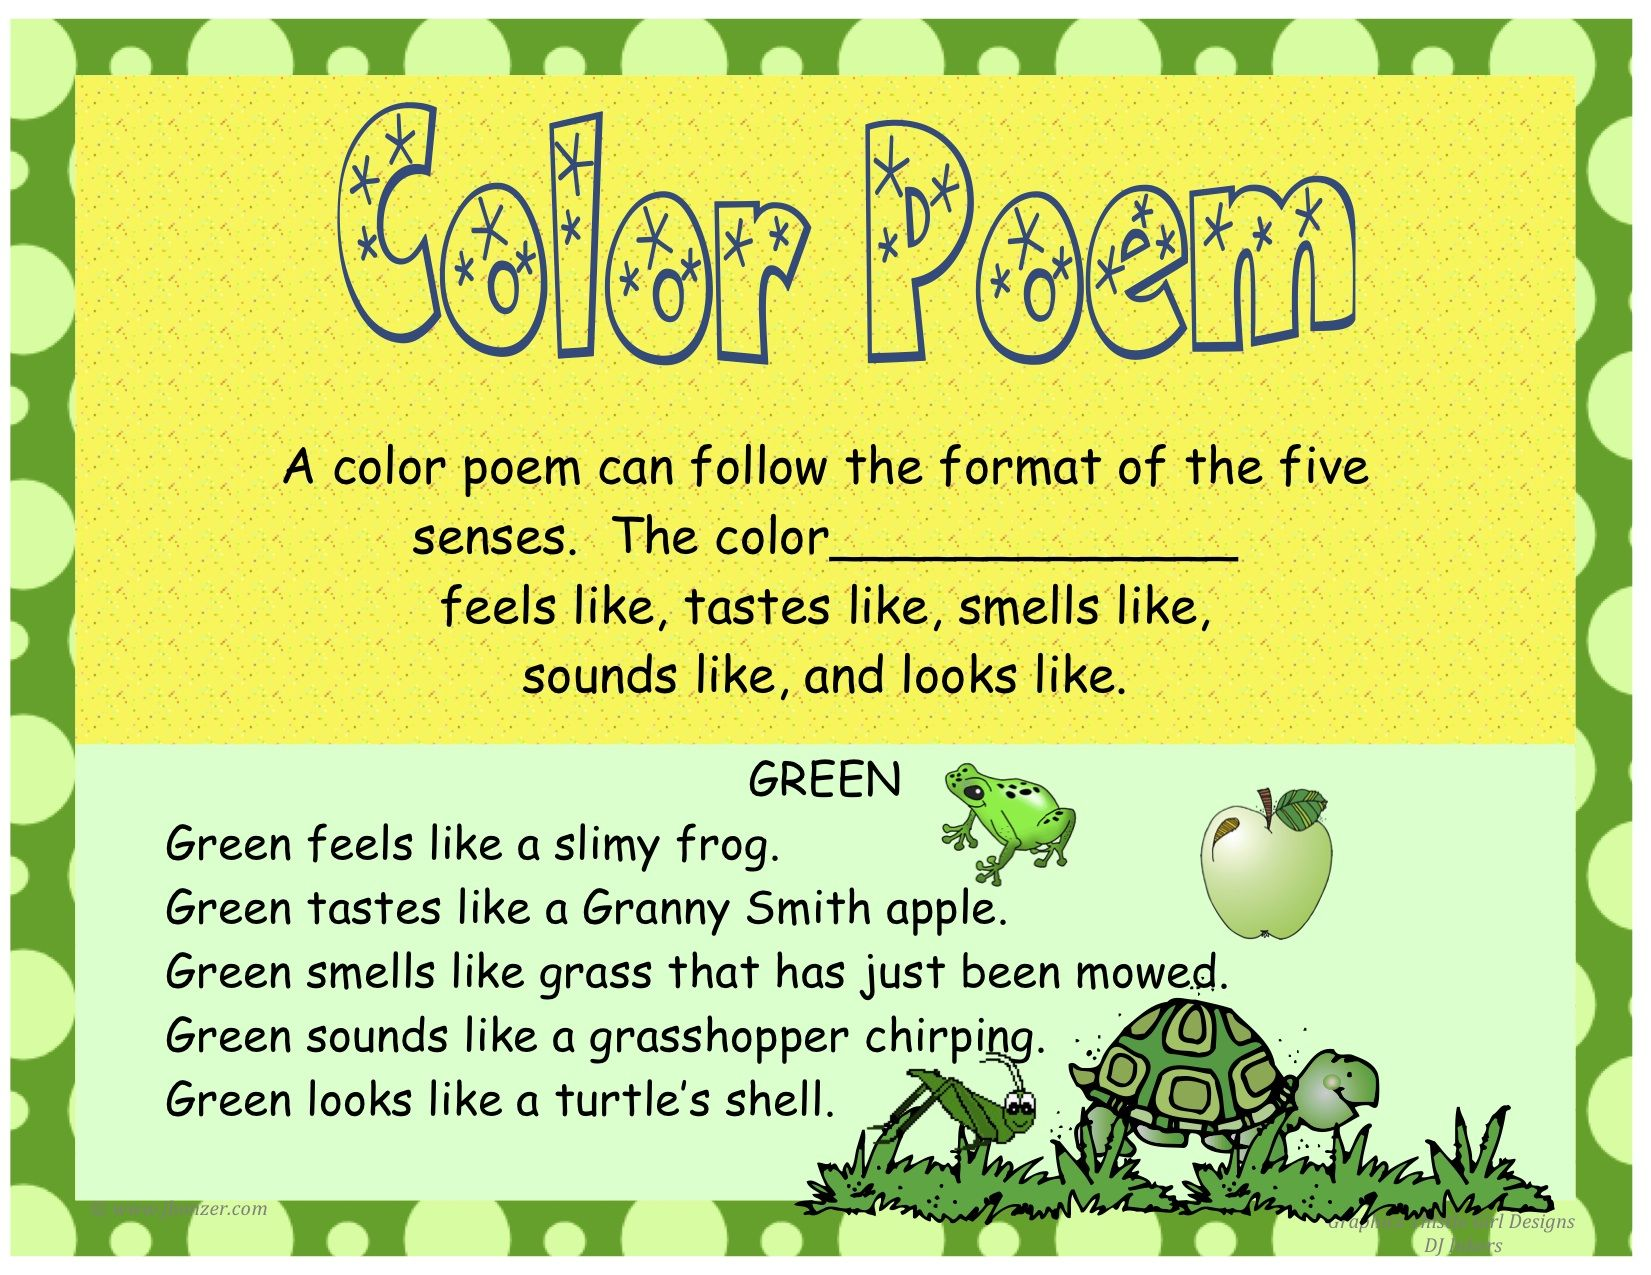 How To Write A Color Poem